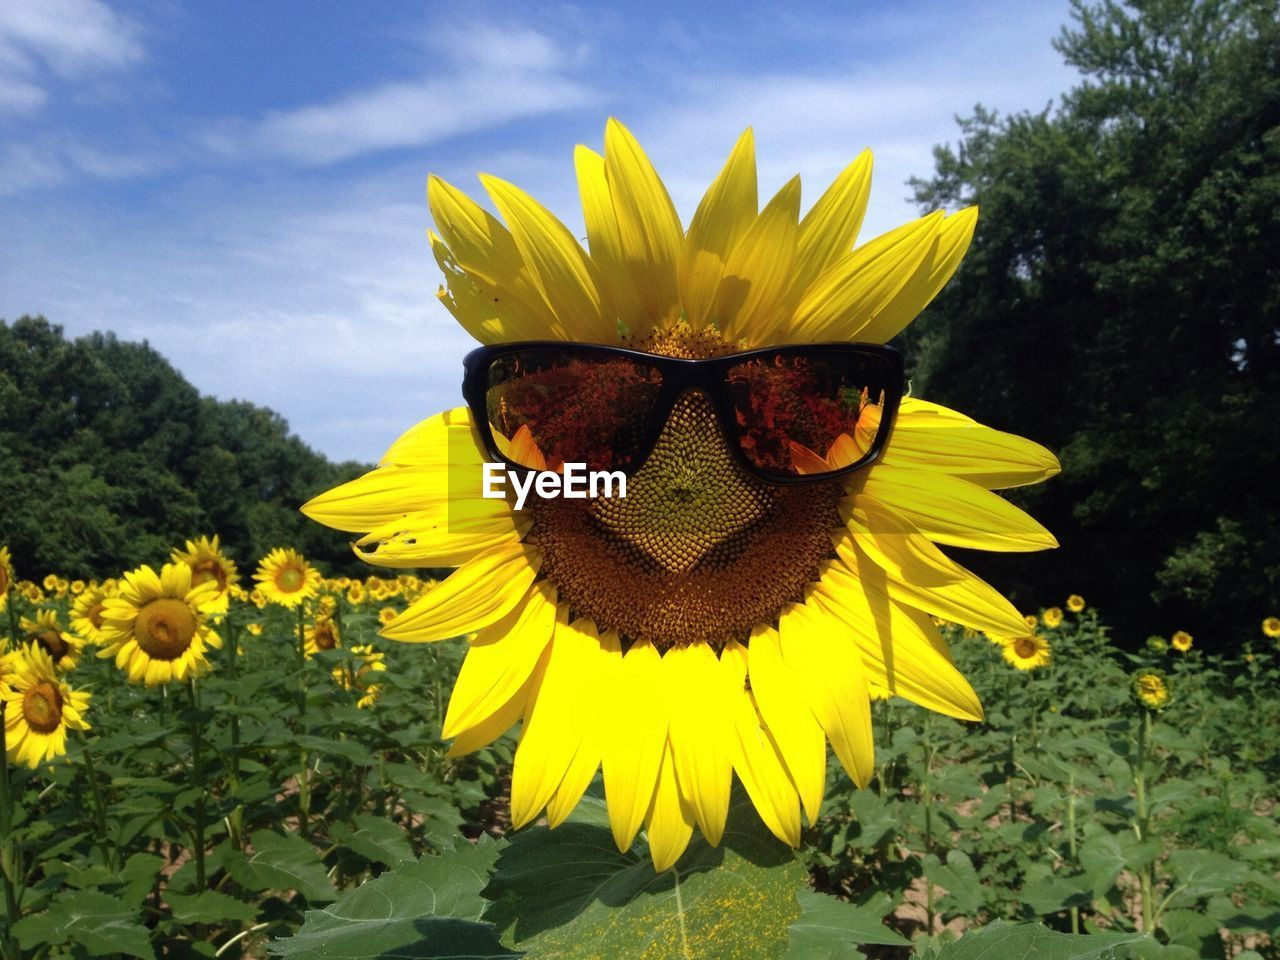 flower, yellow, petal, fragility, nature, growth, sunflower, beauty in nature, plant, flower head, freshness, blooming, day, outdoors, no people, pollen, sky, leaf, close-up, black-eyed susan